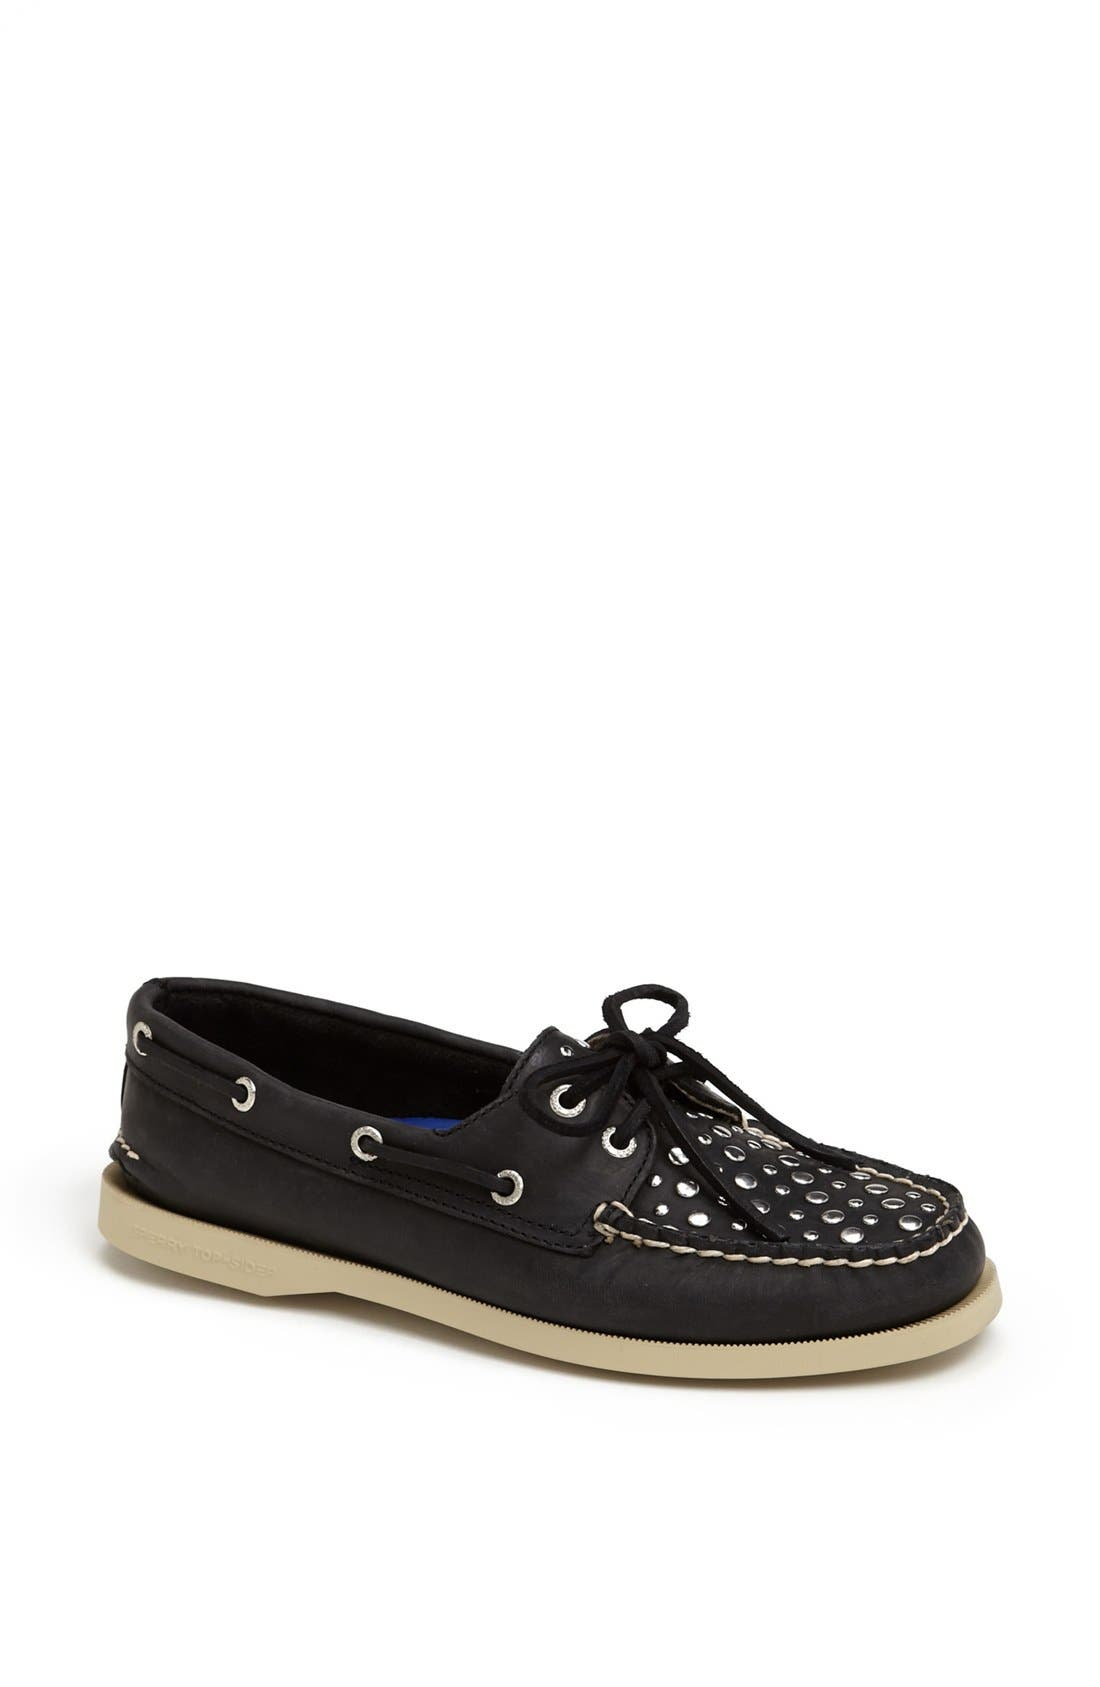 Alternate Image 1 Selected - Sperry Top-Sider® Studded Boat Shoe